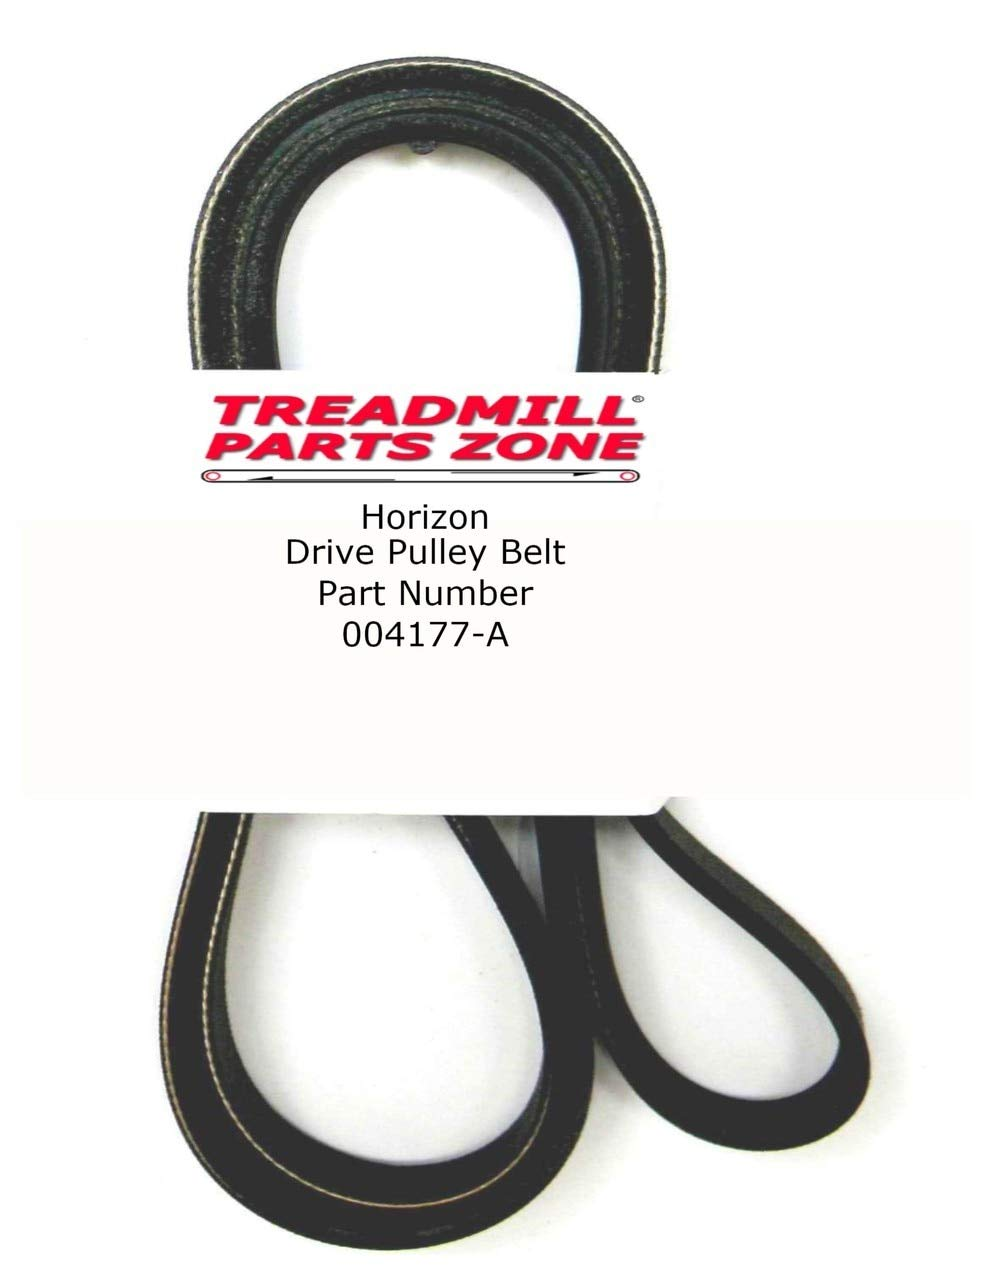 TreadmillPartsZone Replacement Horizon Elliptical Model E901 EP230B Drive Pulley Belt Part Number 004177-A by TreadmillPartsZone (Image #1)